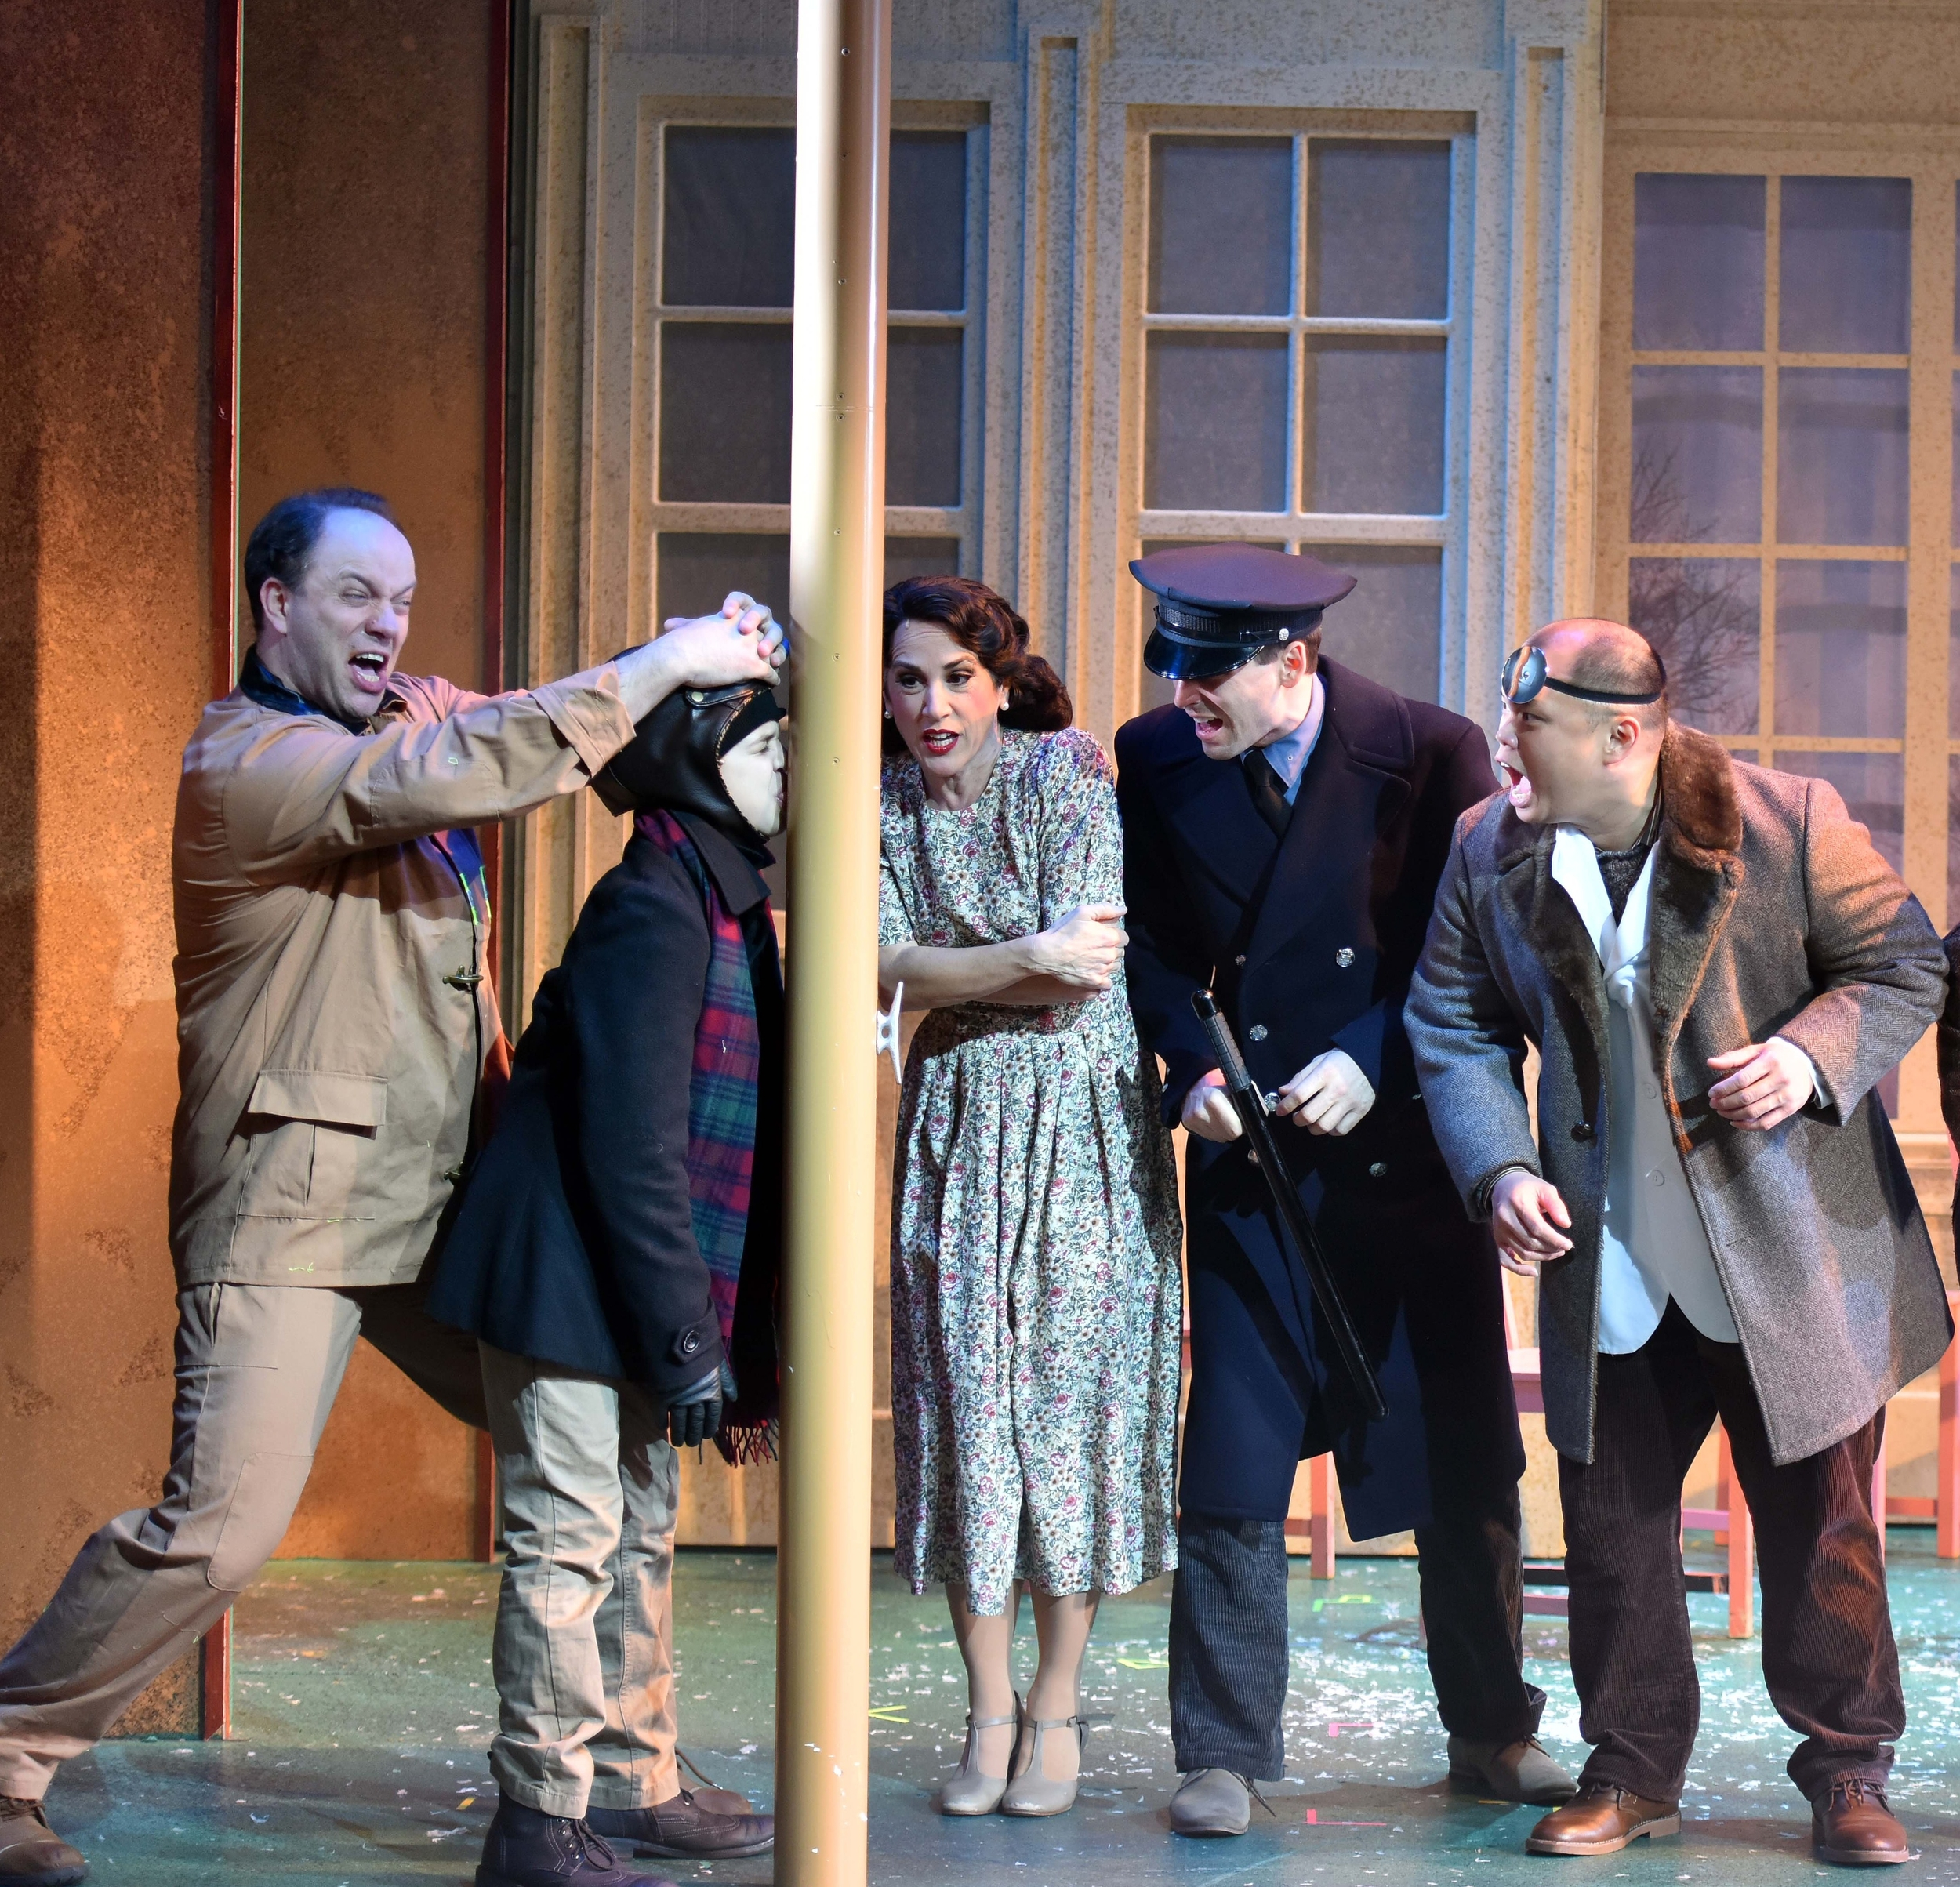 """Chad Jennings, Vincent Gerardi, Kathryn Markey, Larry A. Lozier, Jr. and Viet Vo in a famous scene from """"A Christmas Story."""" (Photo: Engeman Theater)."""